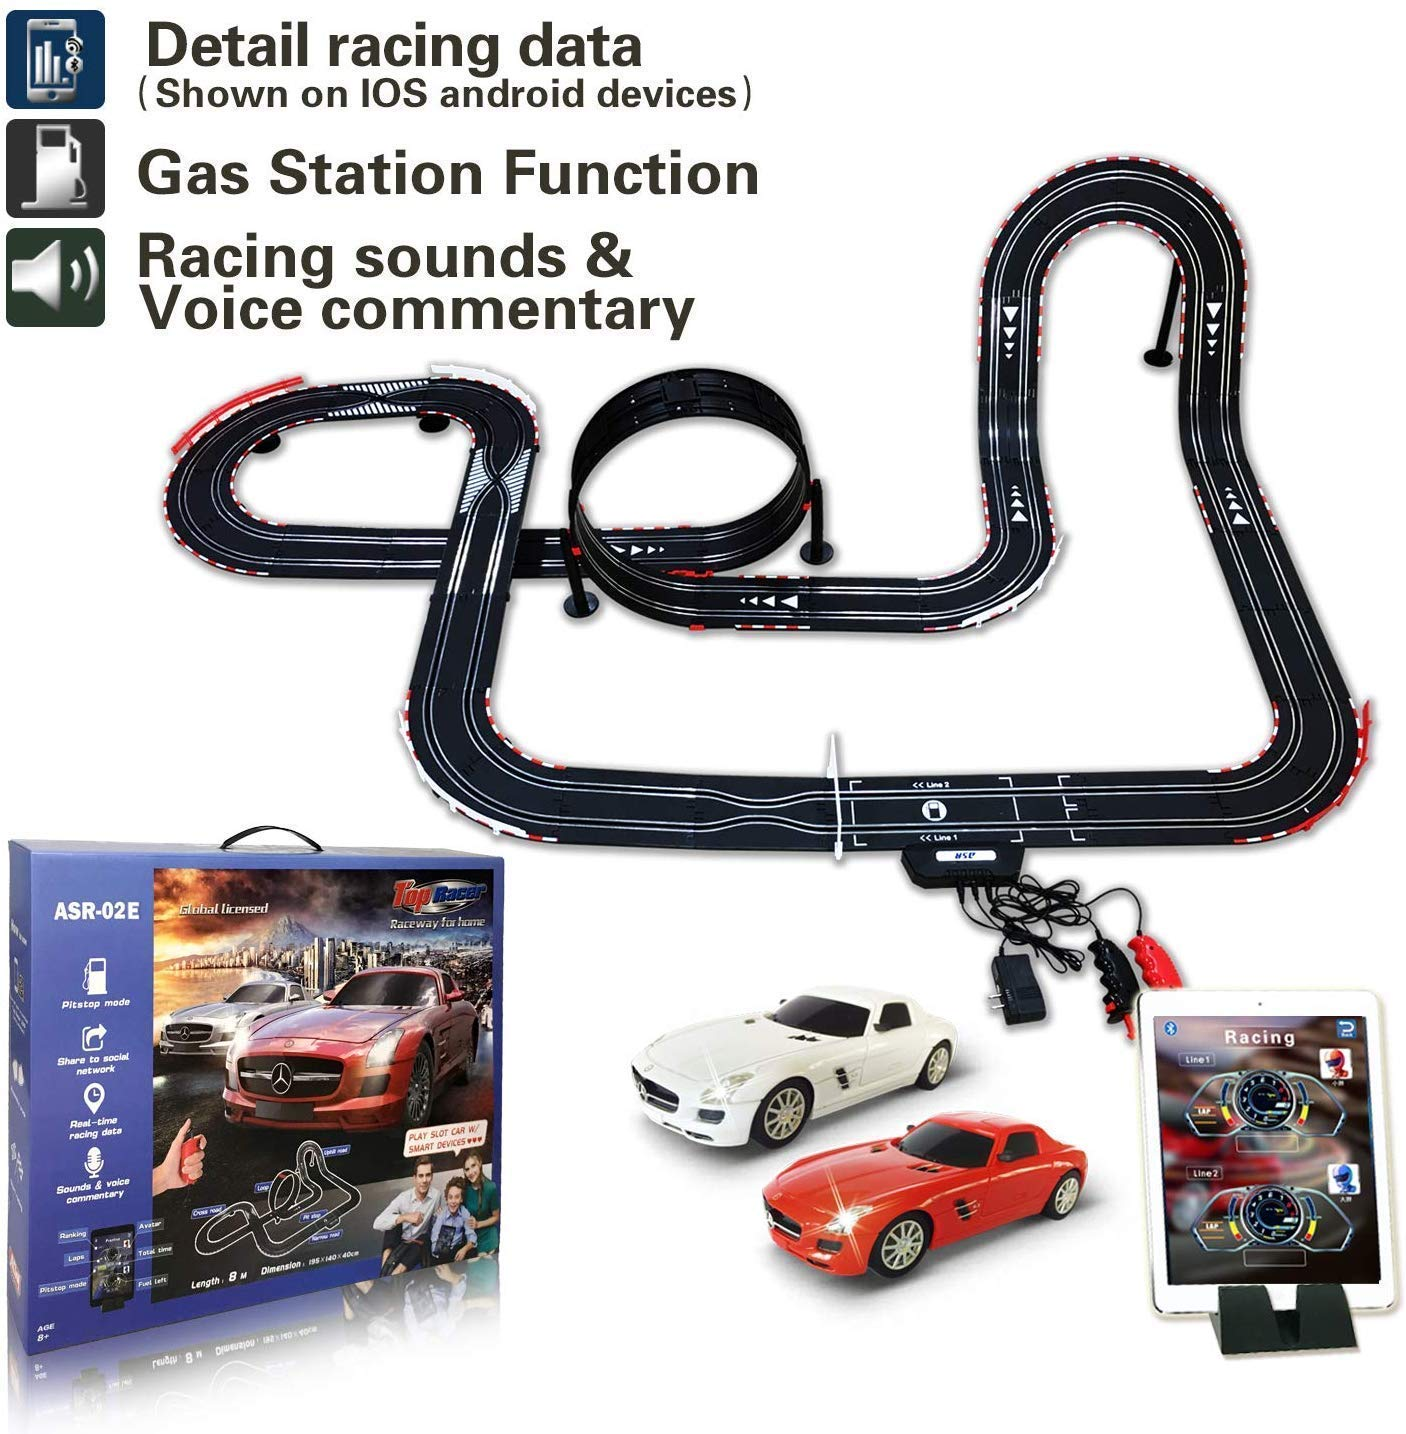 AGM Slot car Set with Racing Assistant APP No.ASR-02 1:43 Scale.